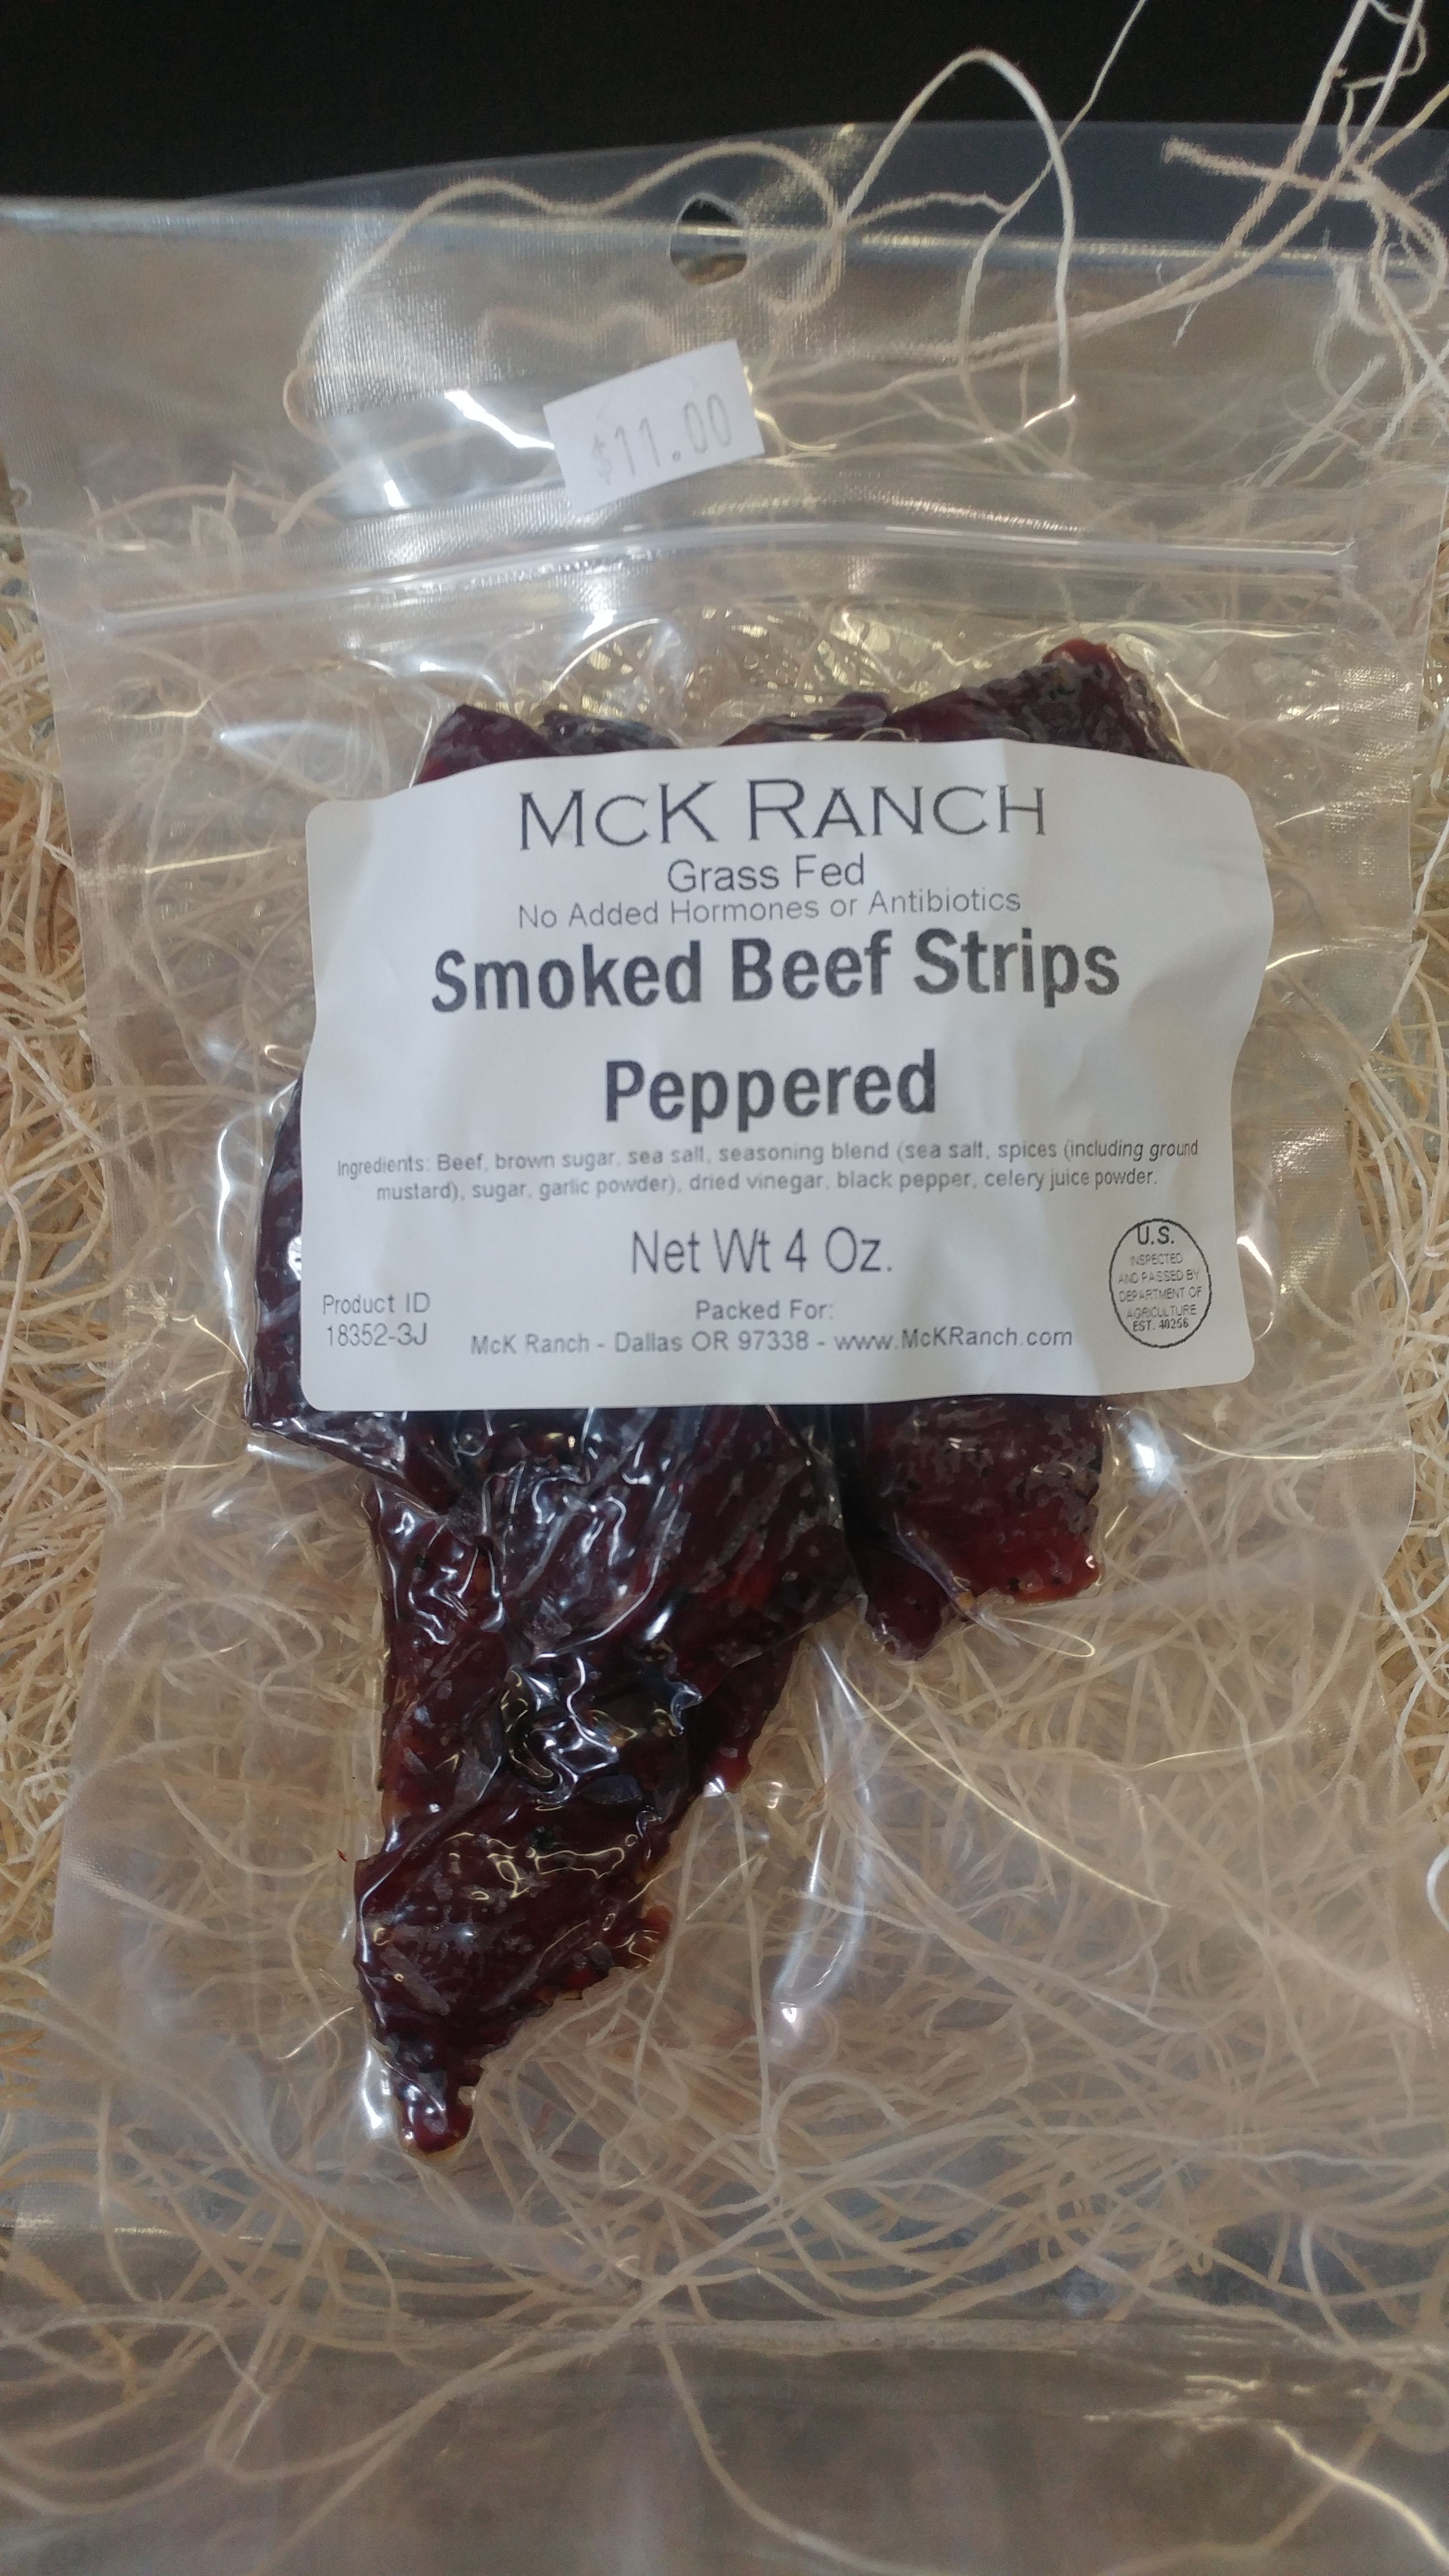 Peppered Smoked Beef Strips 00008